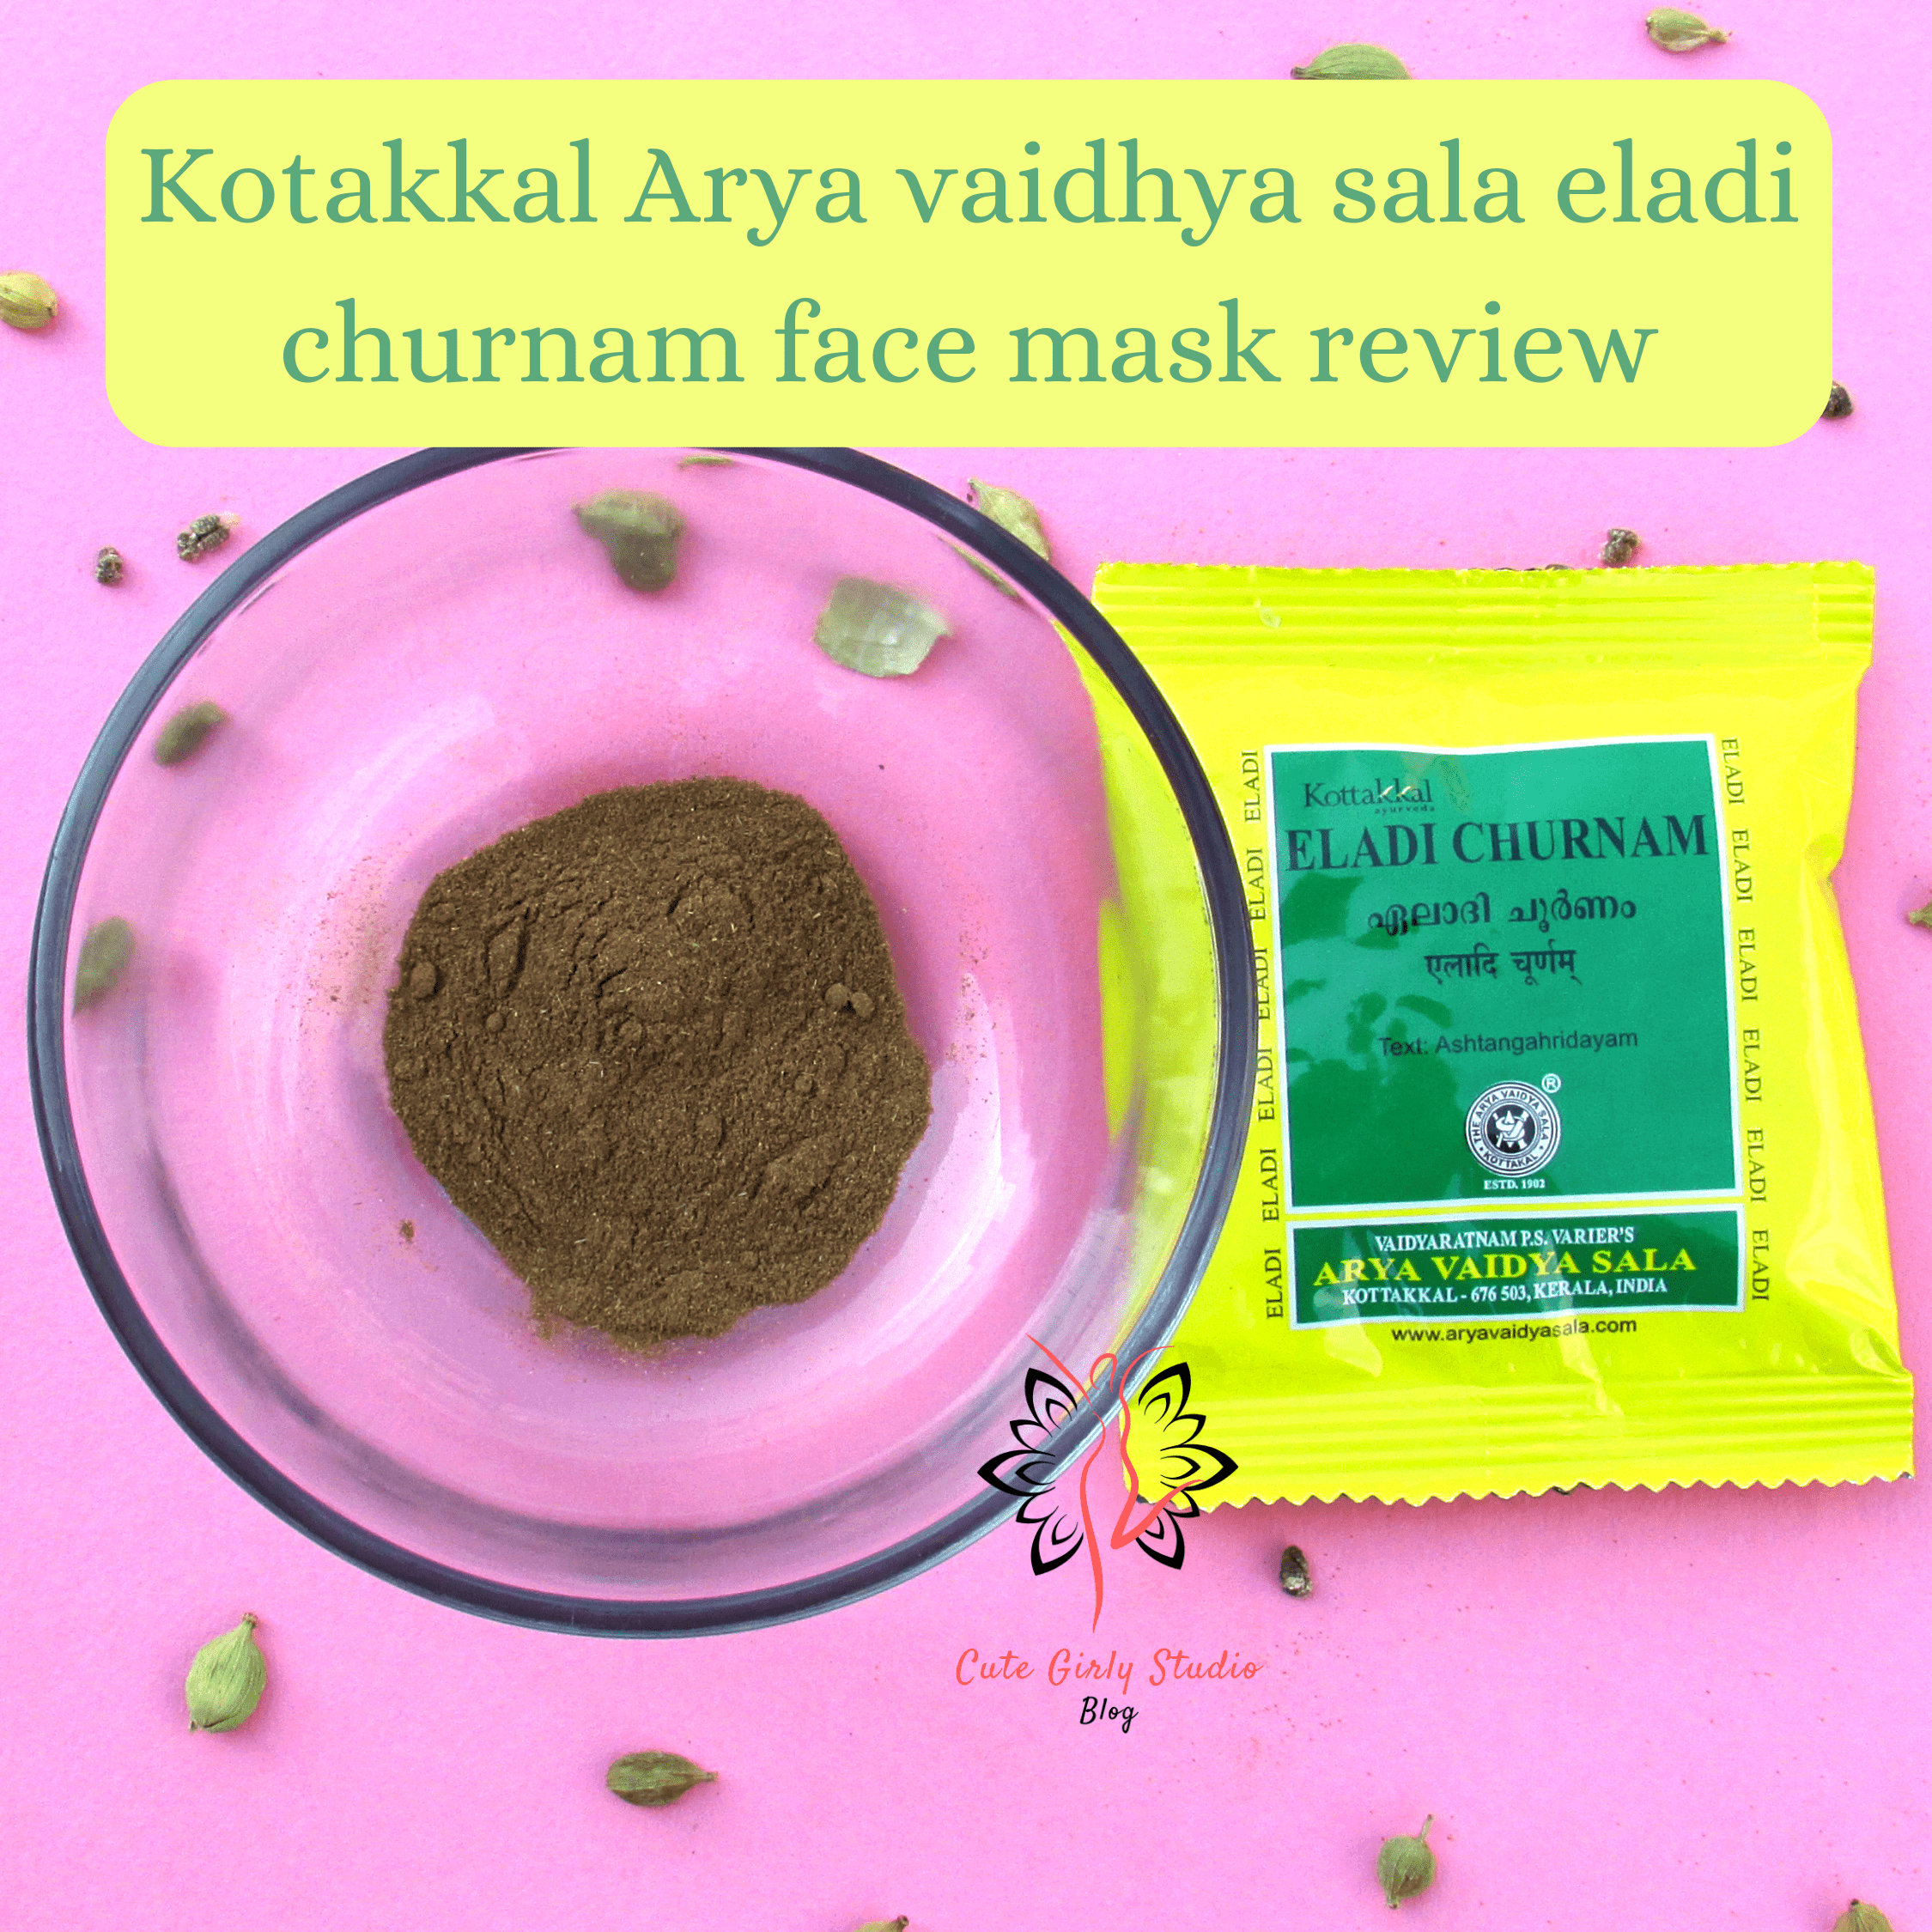 Kotakkal Eladi churnam face mask review